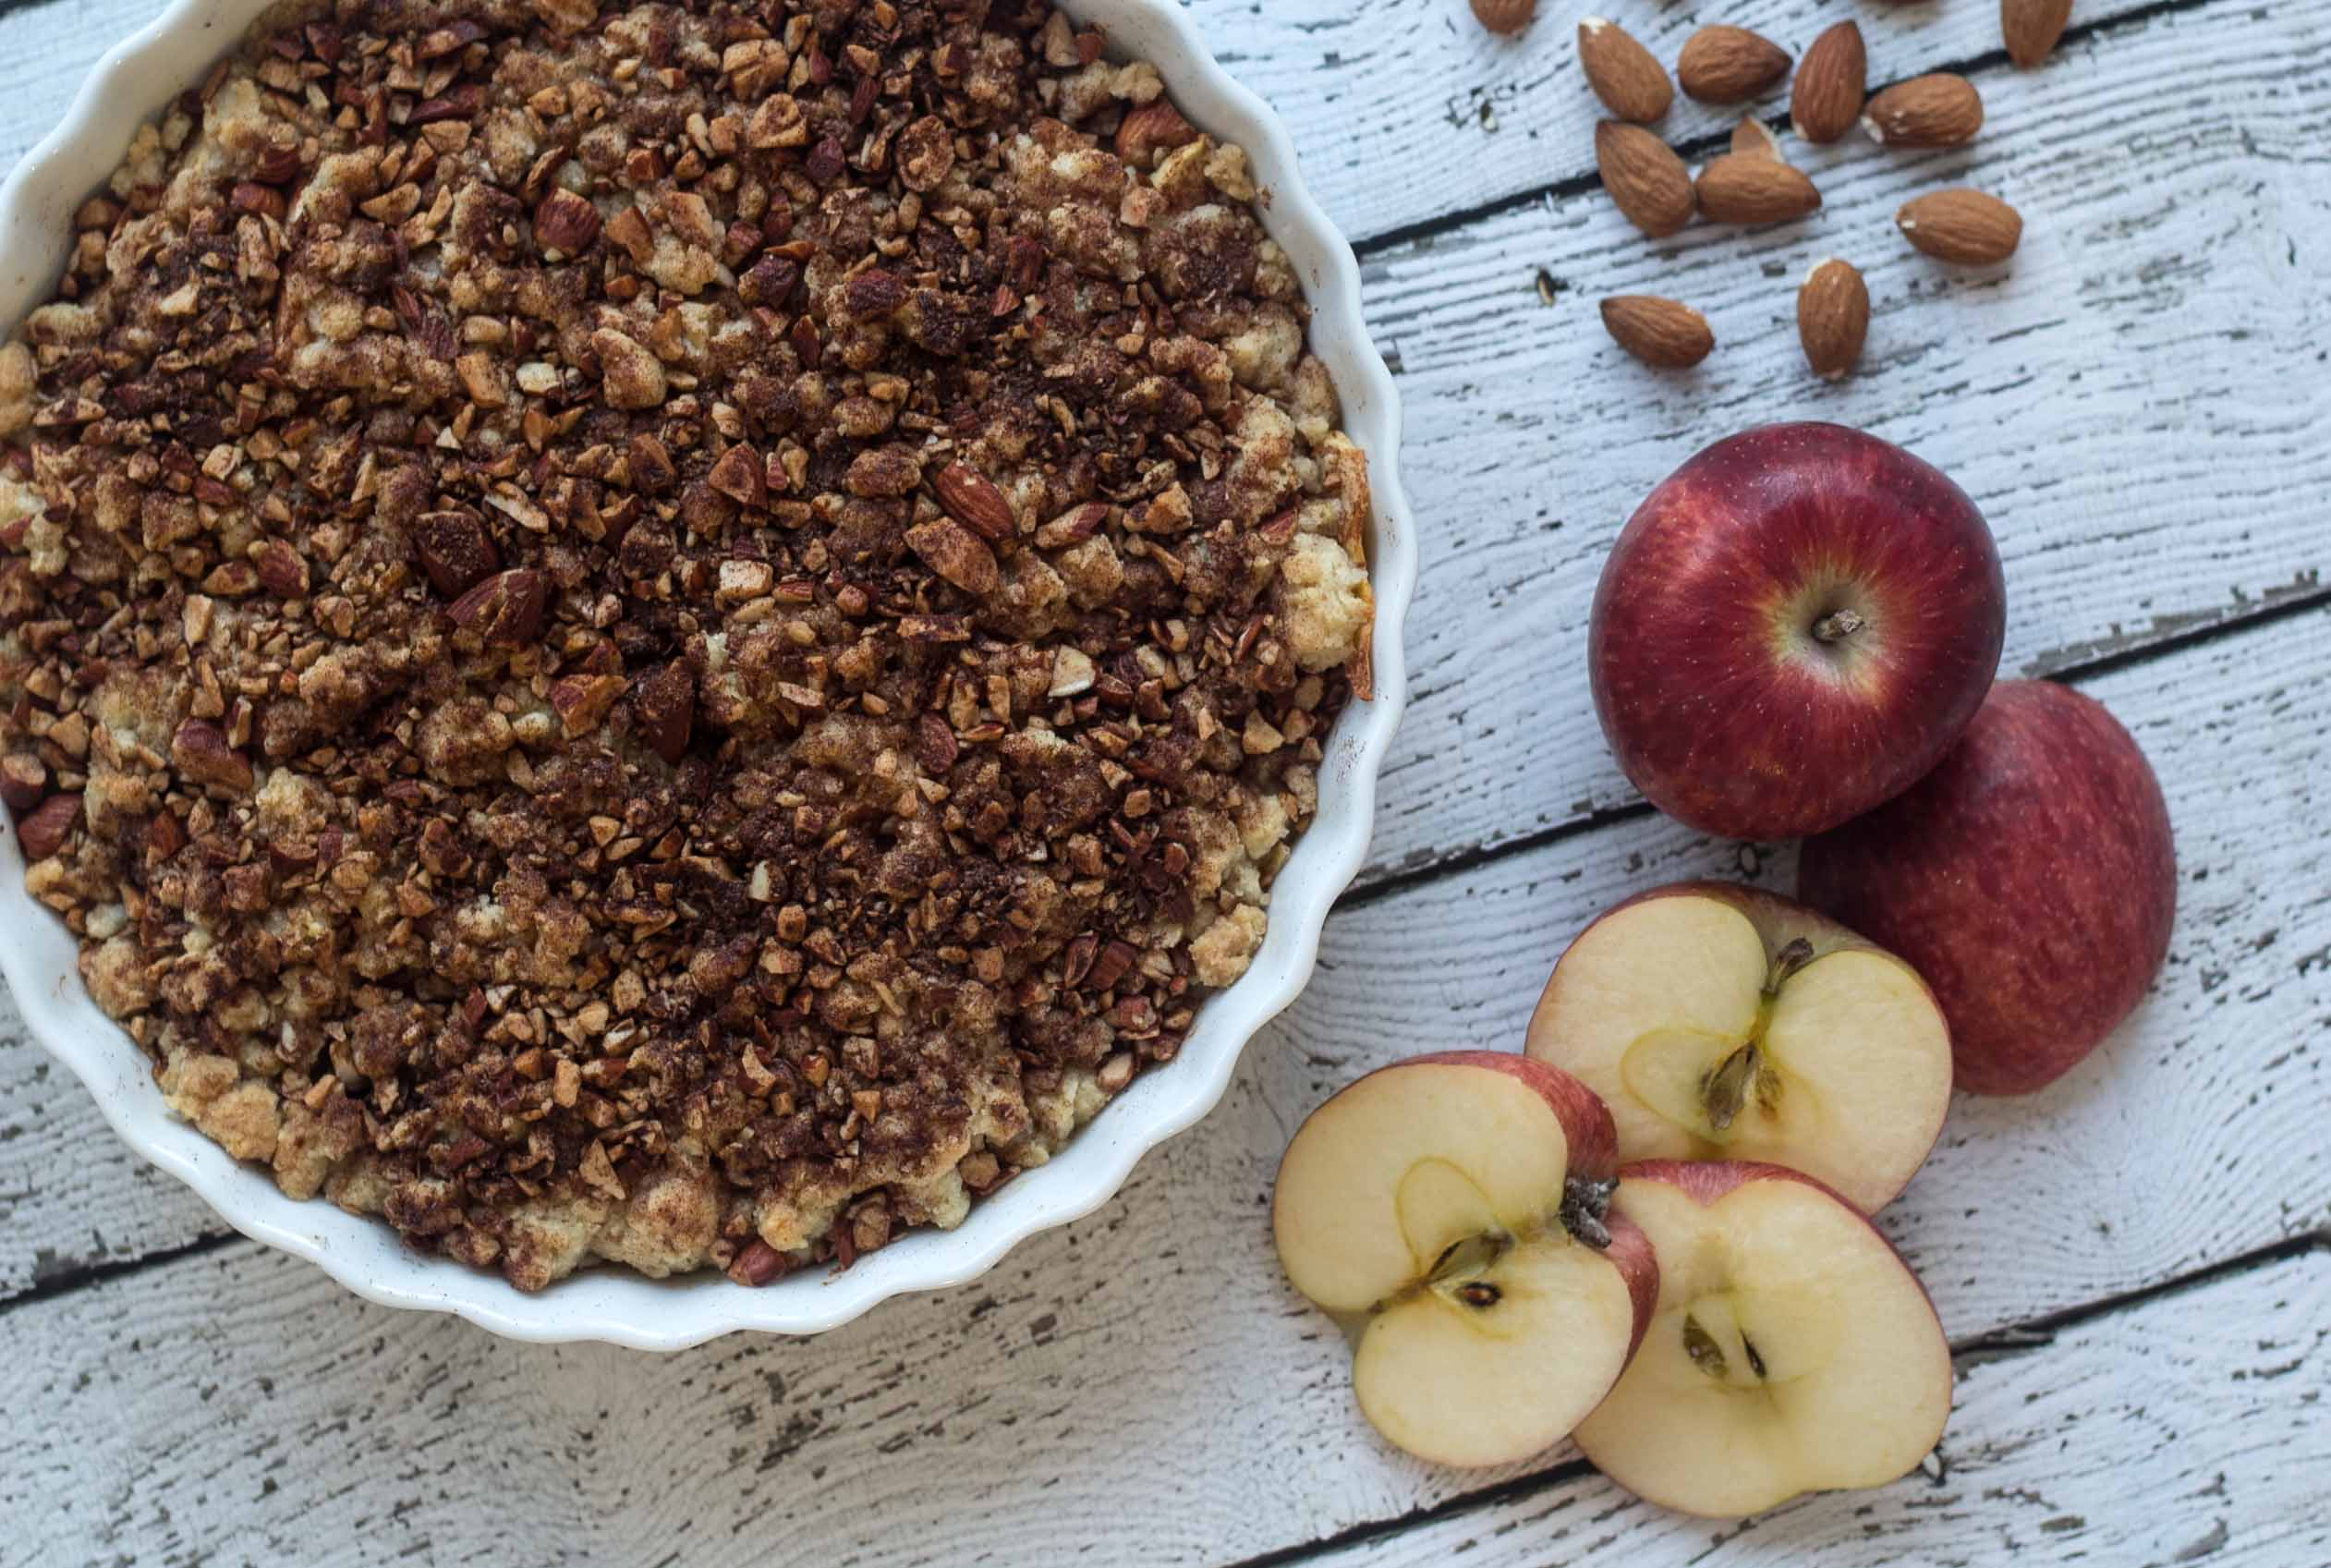 Recipe for Nordic Cinnamon Crumble Apple Pie